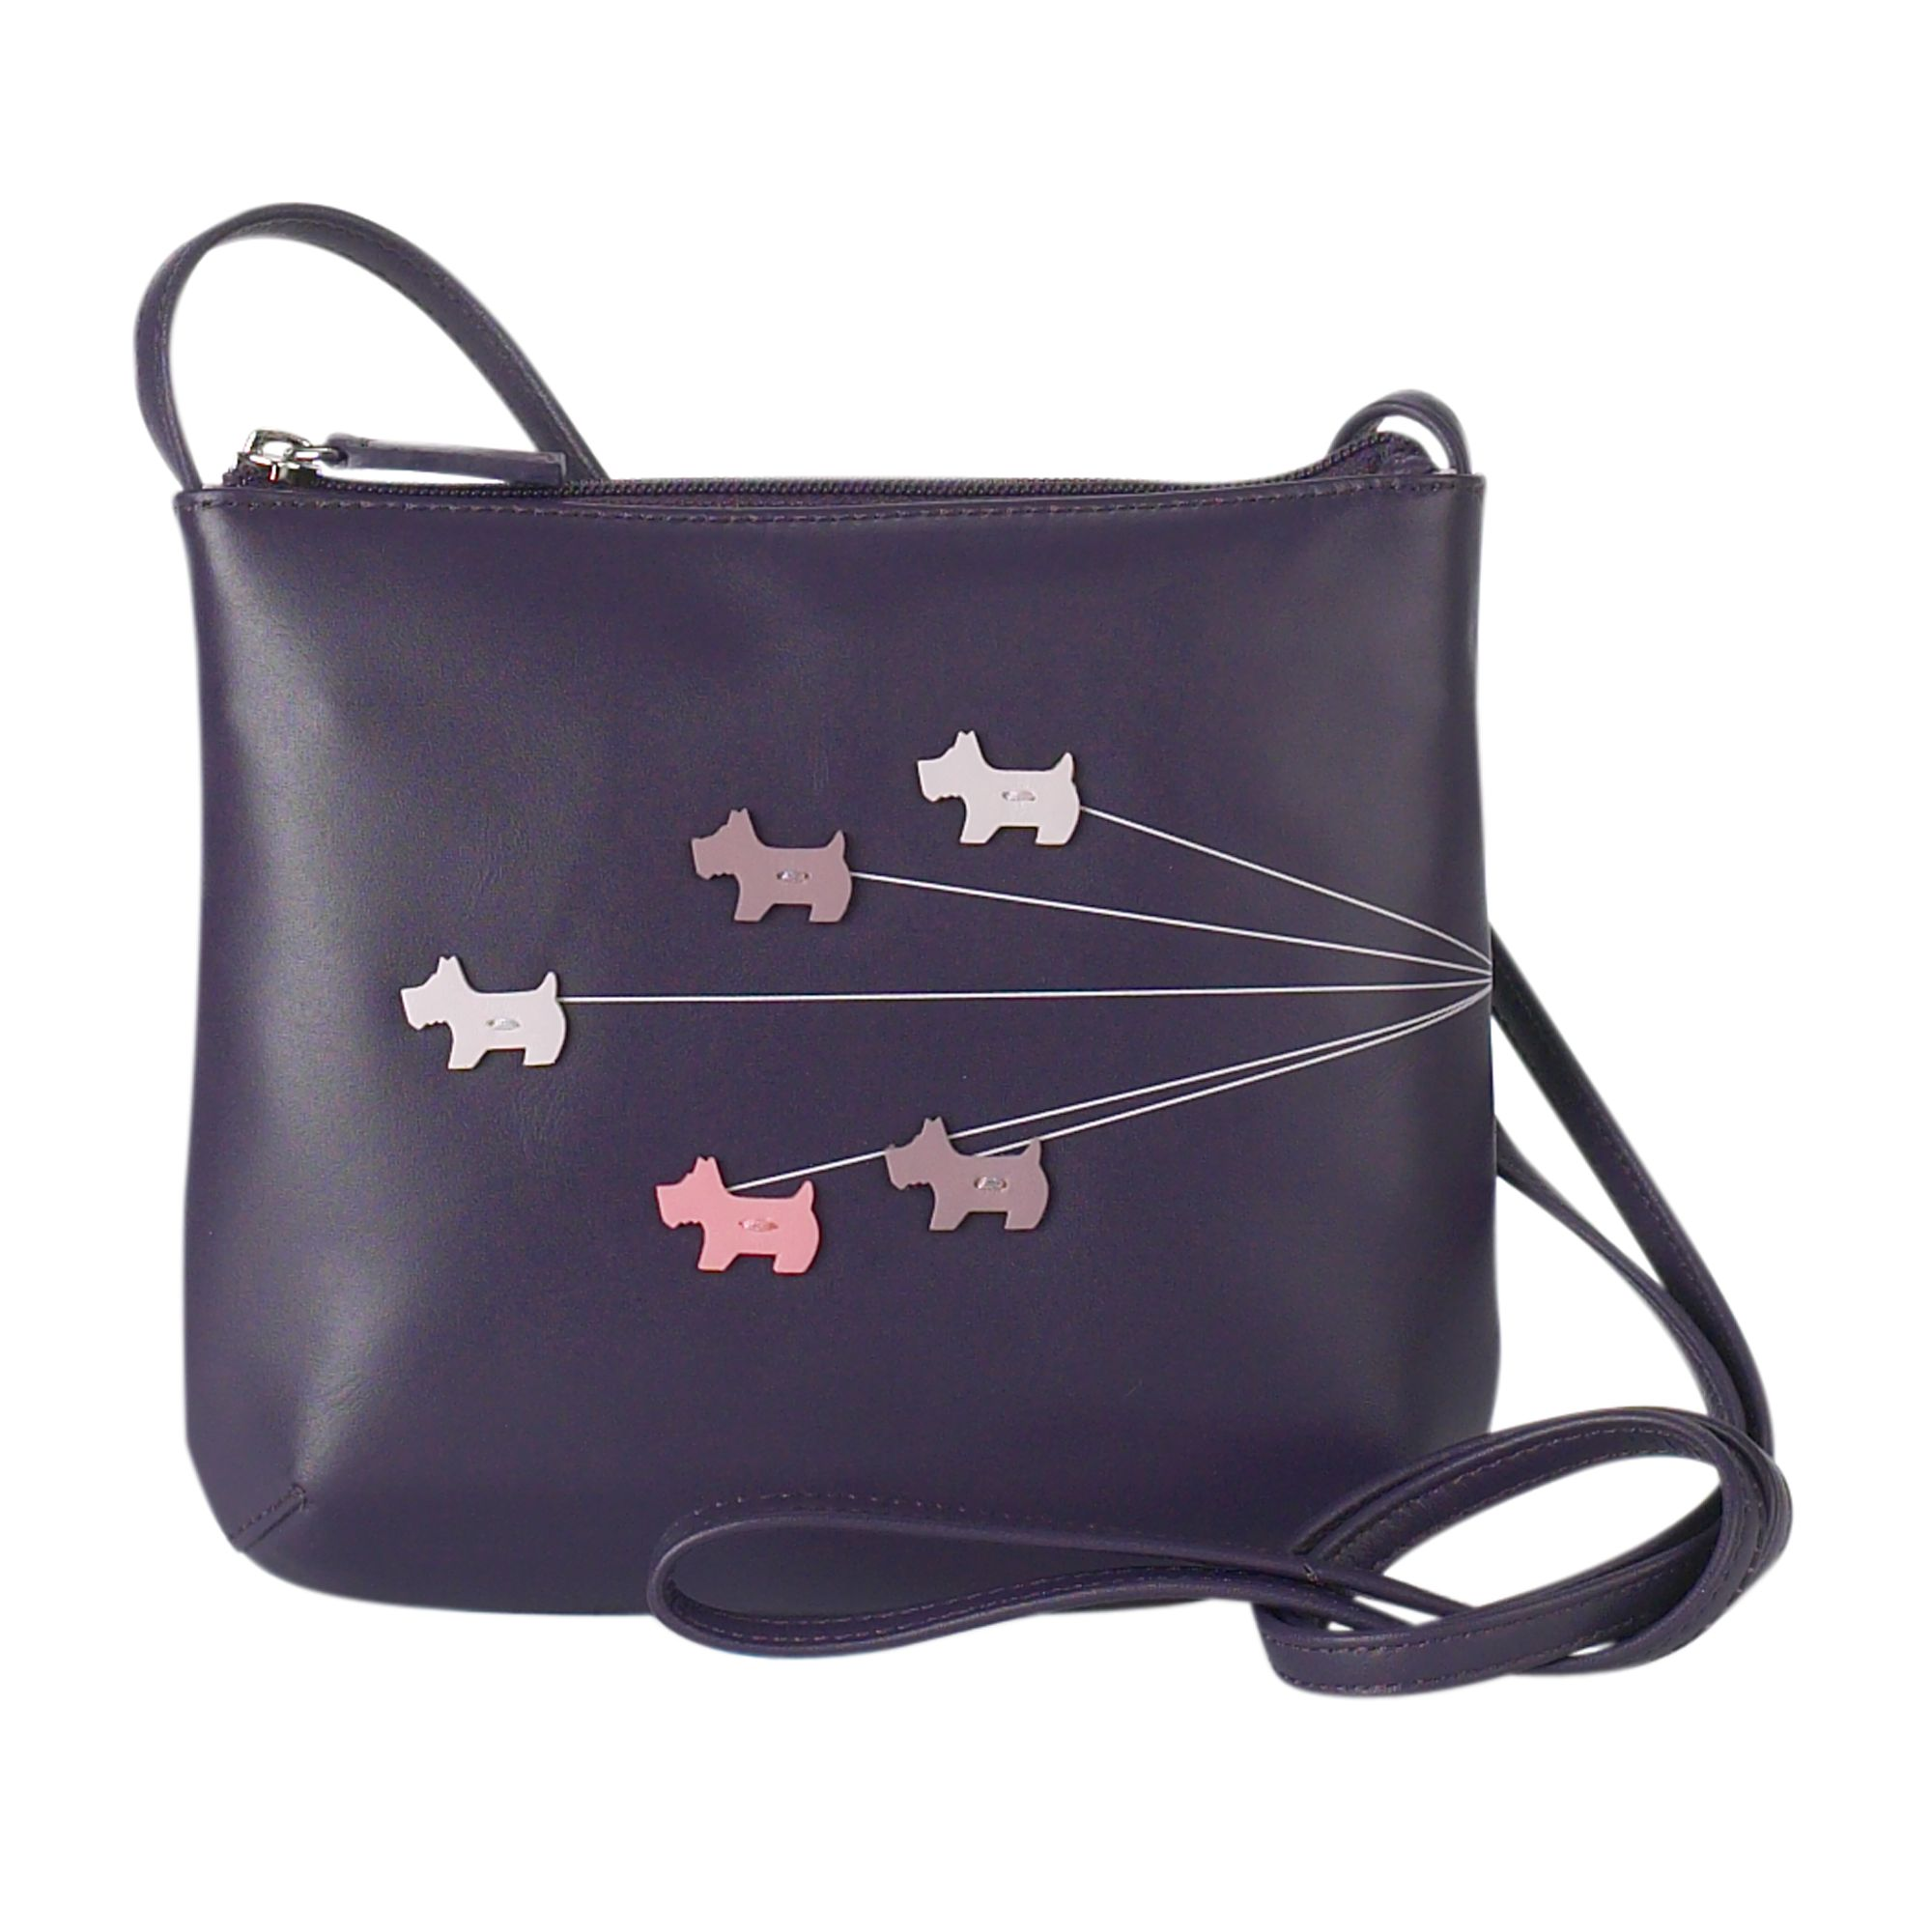 Walkies medium leather cross body bag